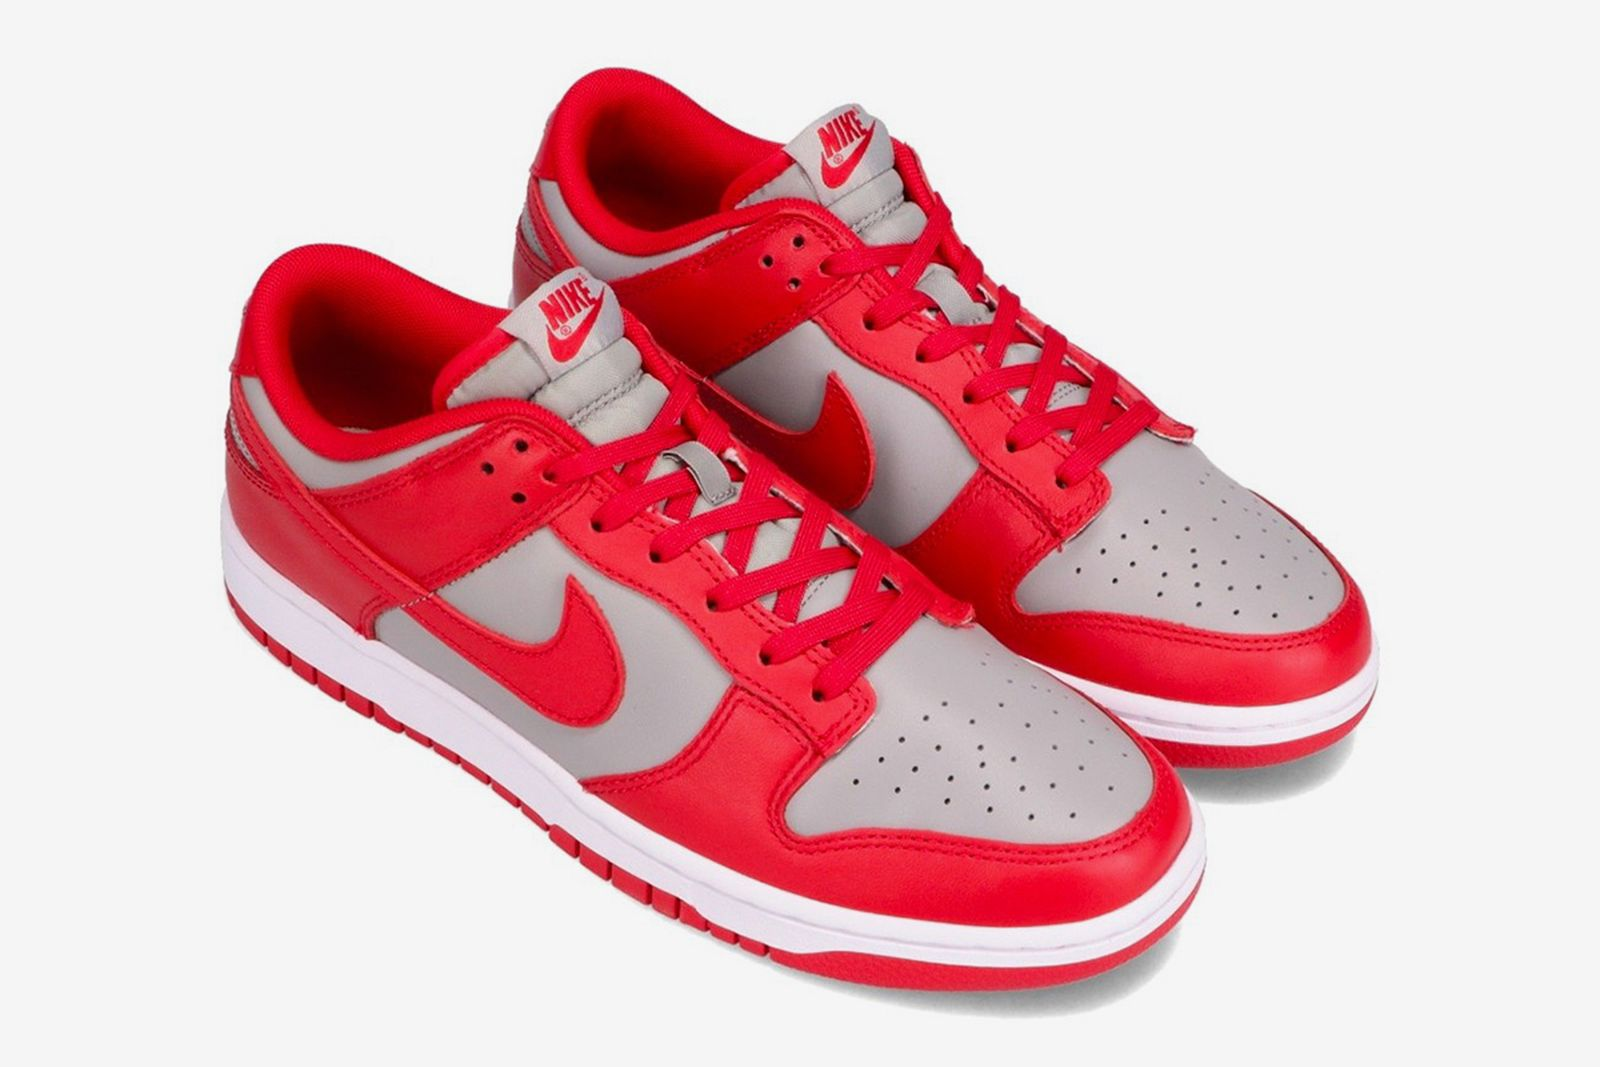 nike-dunks-january-2021-release-date-price-07